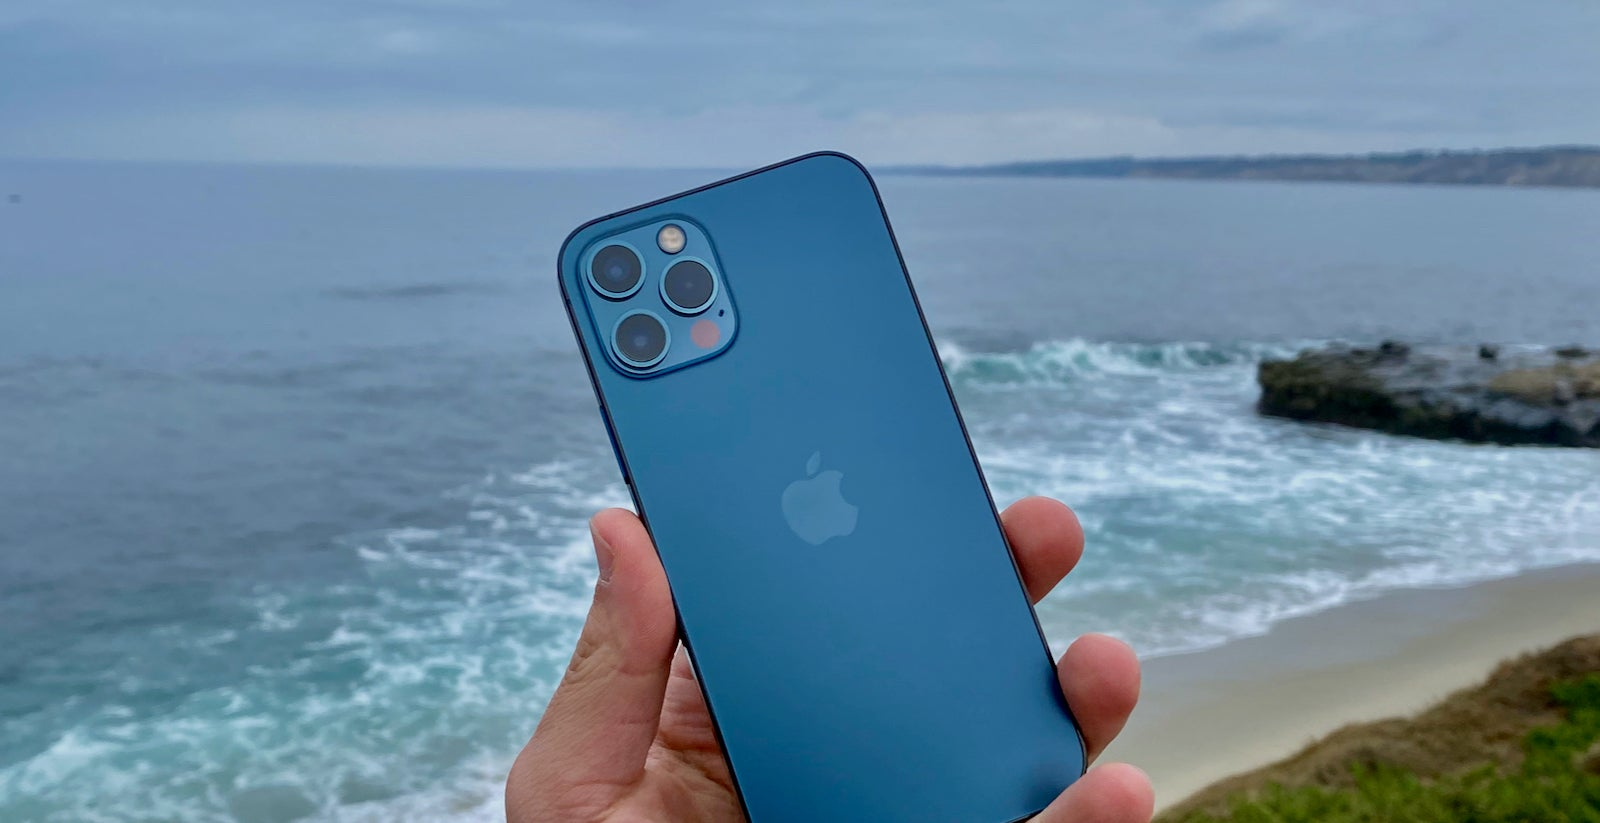 Review: I spent 48 hours with the new iPhone 12 Pro